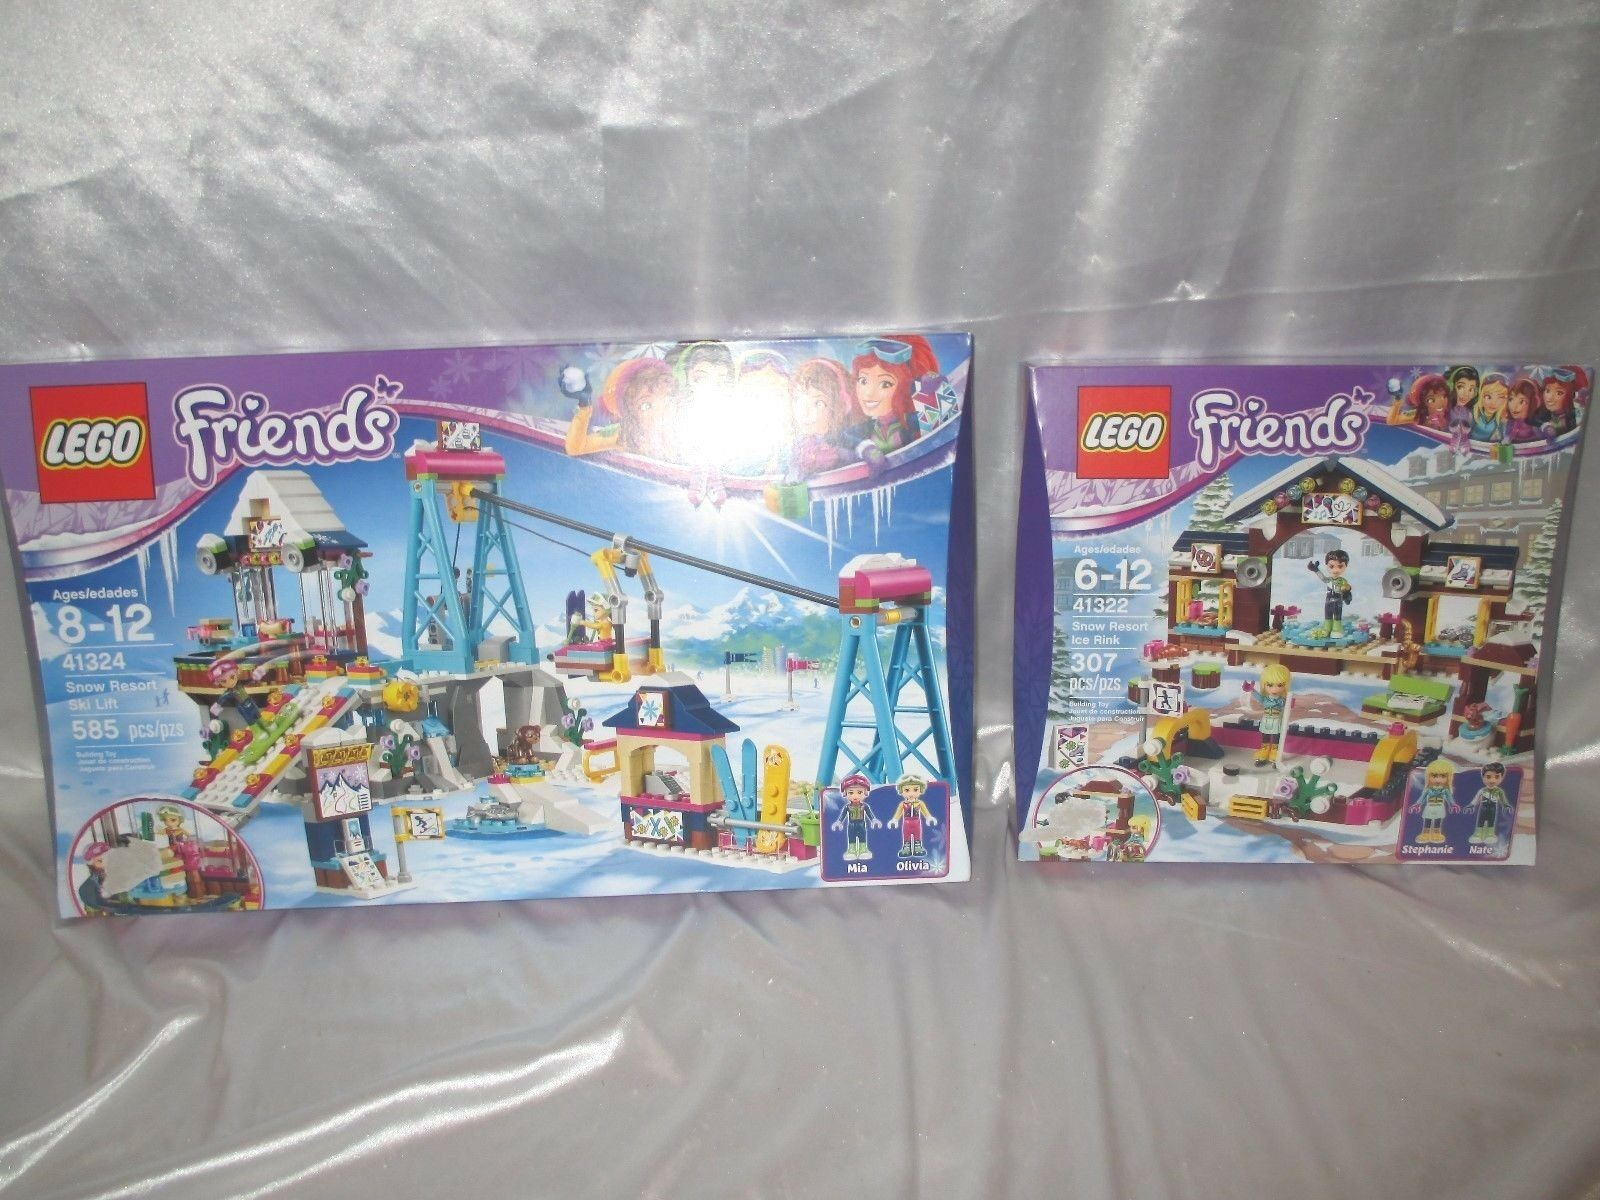 Lego Friends (2 sets) Snow Resort Ski Lift 41324 Snow Resort Ice Rink 41322 Lot